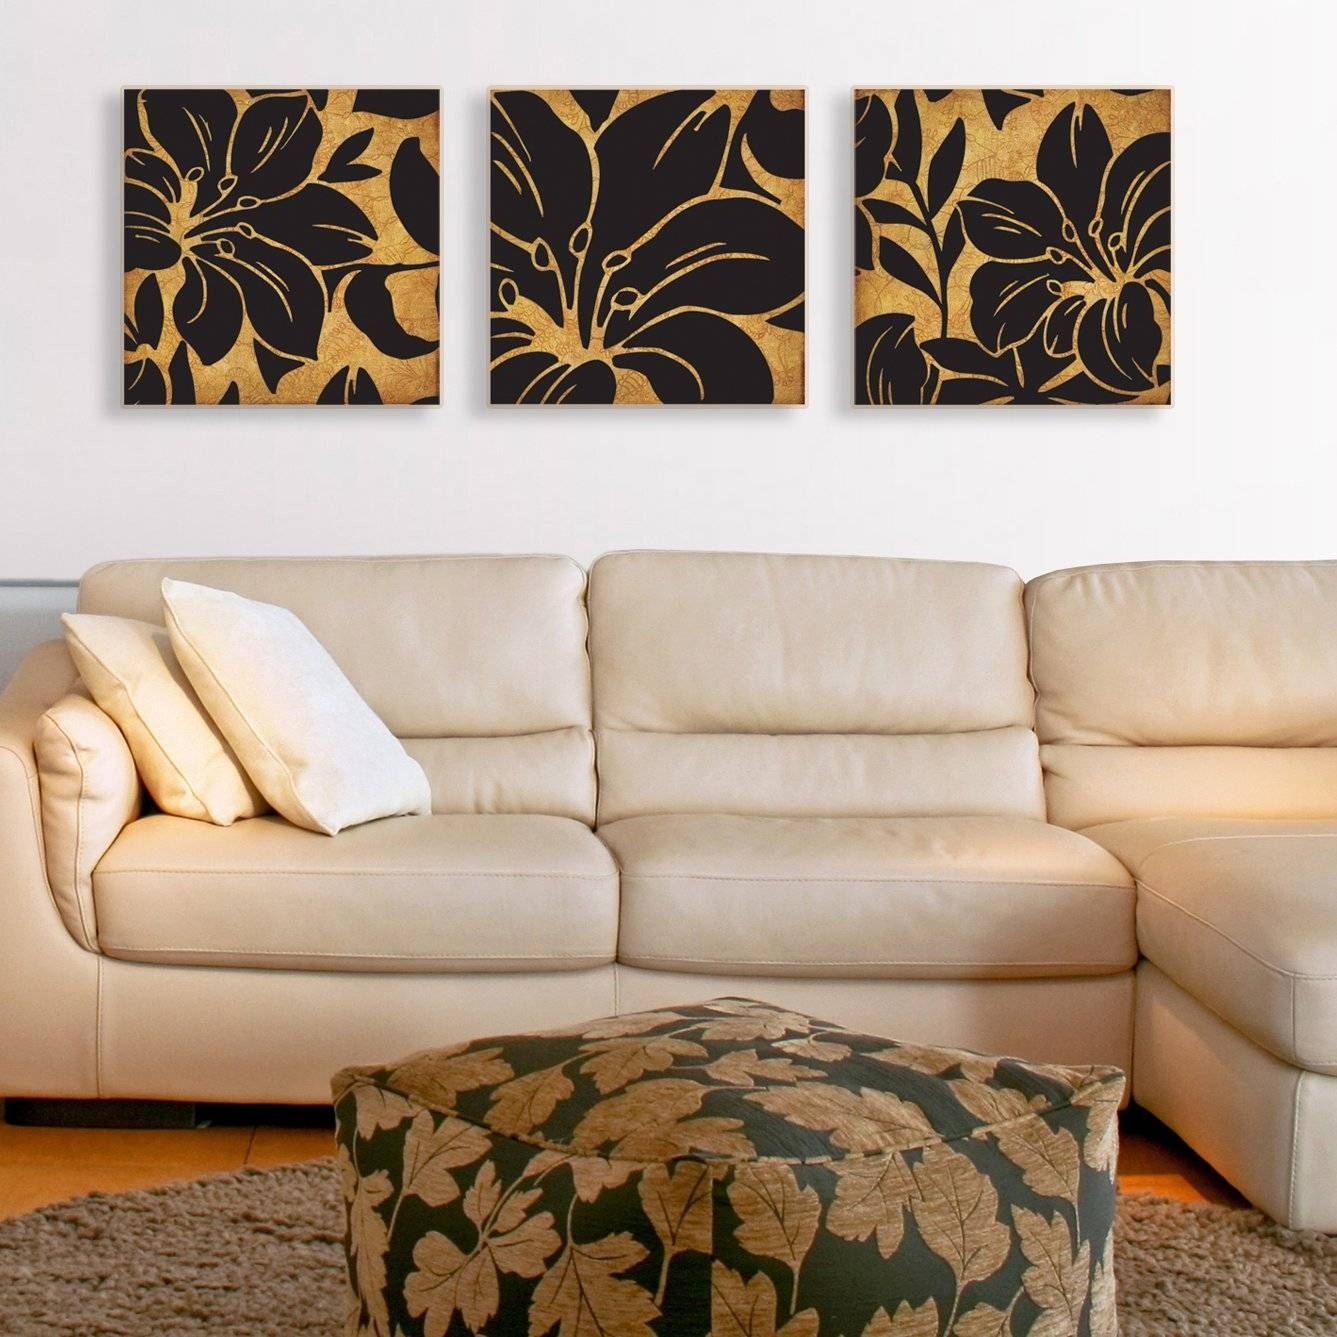 3 Piece Wall Art | Roselawnlutheran Regarding Latest 3 Piece Wall Art Sets (View 4 of 25)